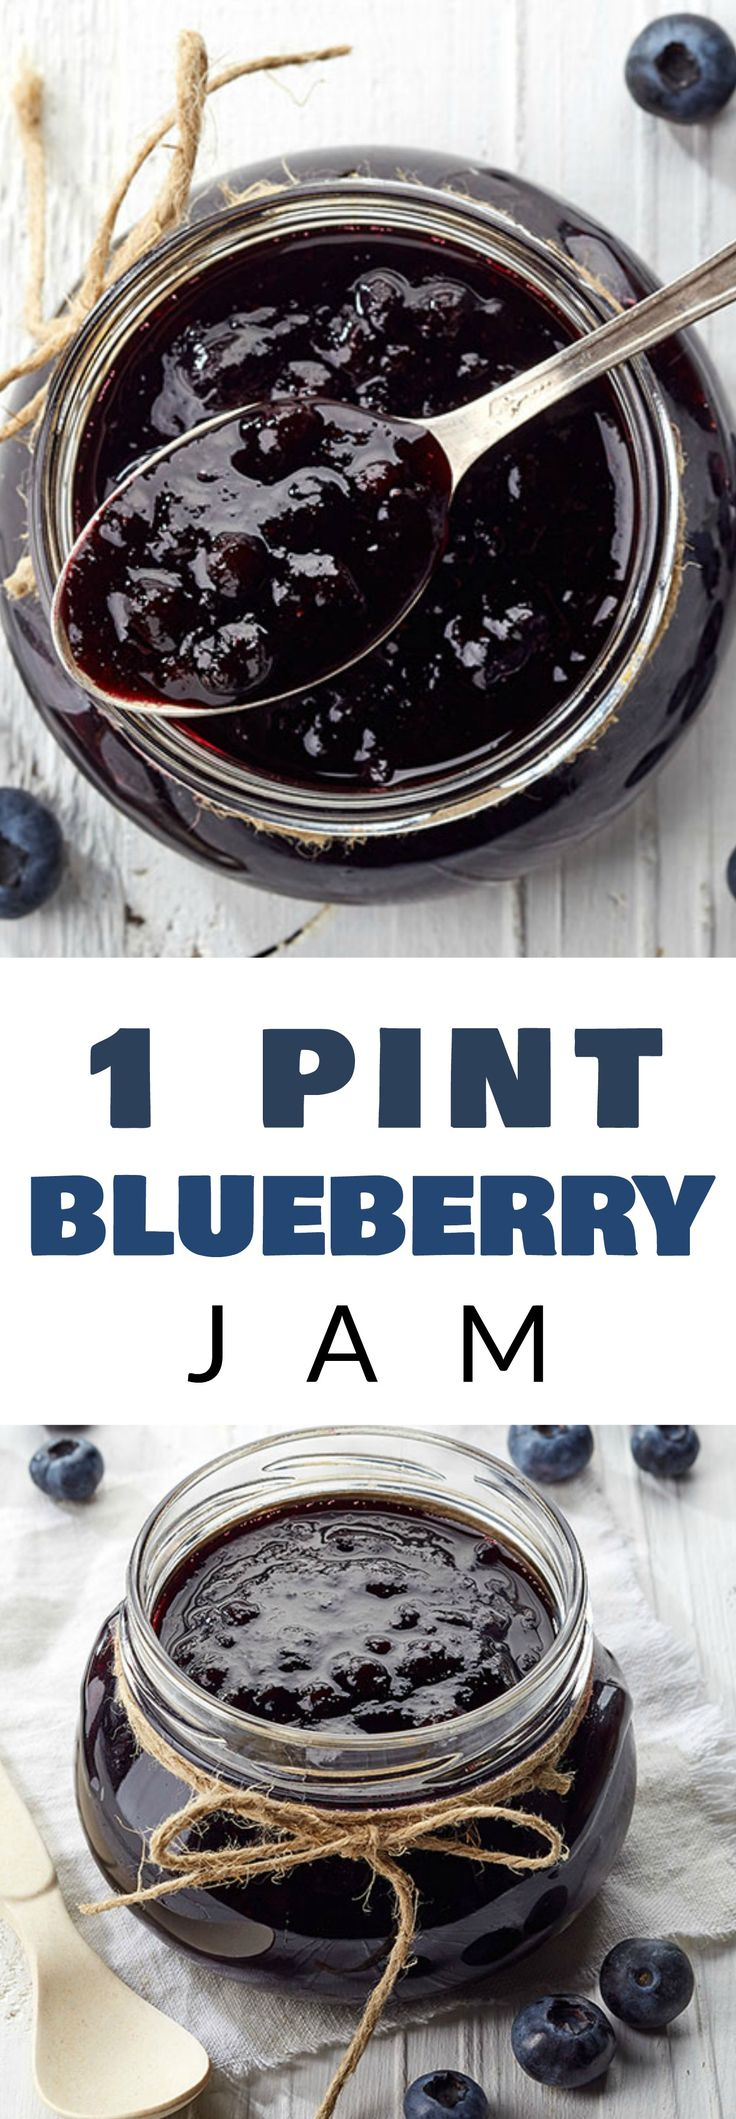 HOMEMADE Blueberry Jam made from 1 pint of blueberries! This easy to make no pectin, no sugar recipe is perfect for eating and canning. This healthy jam is delicious served over toast, pancakes, french toast and ice cream!